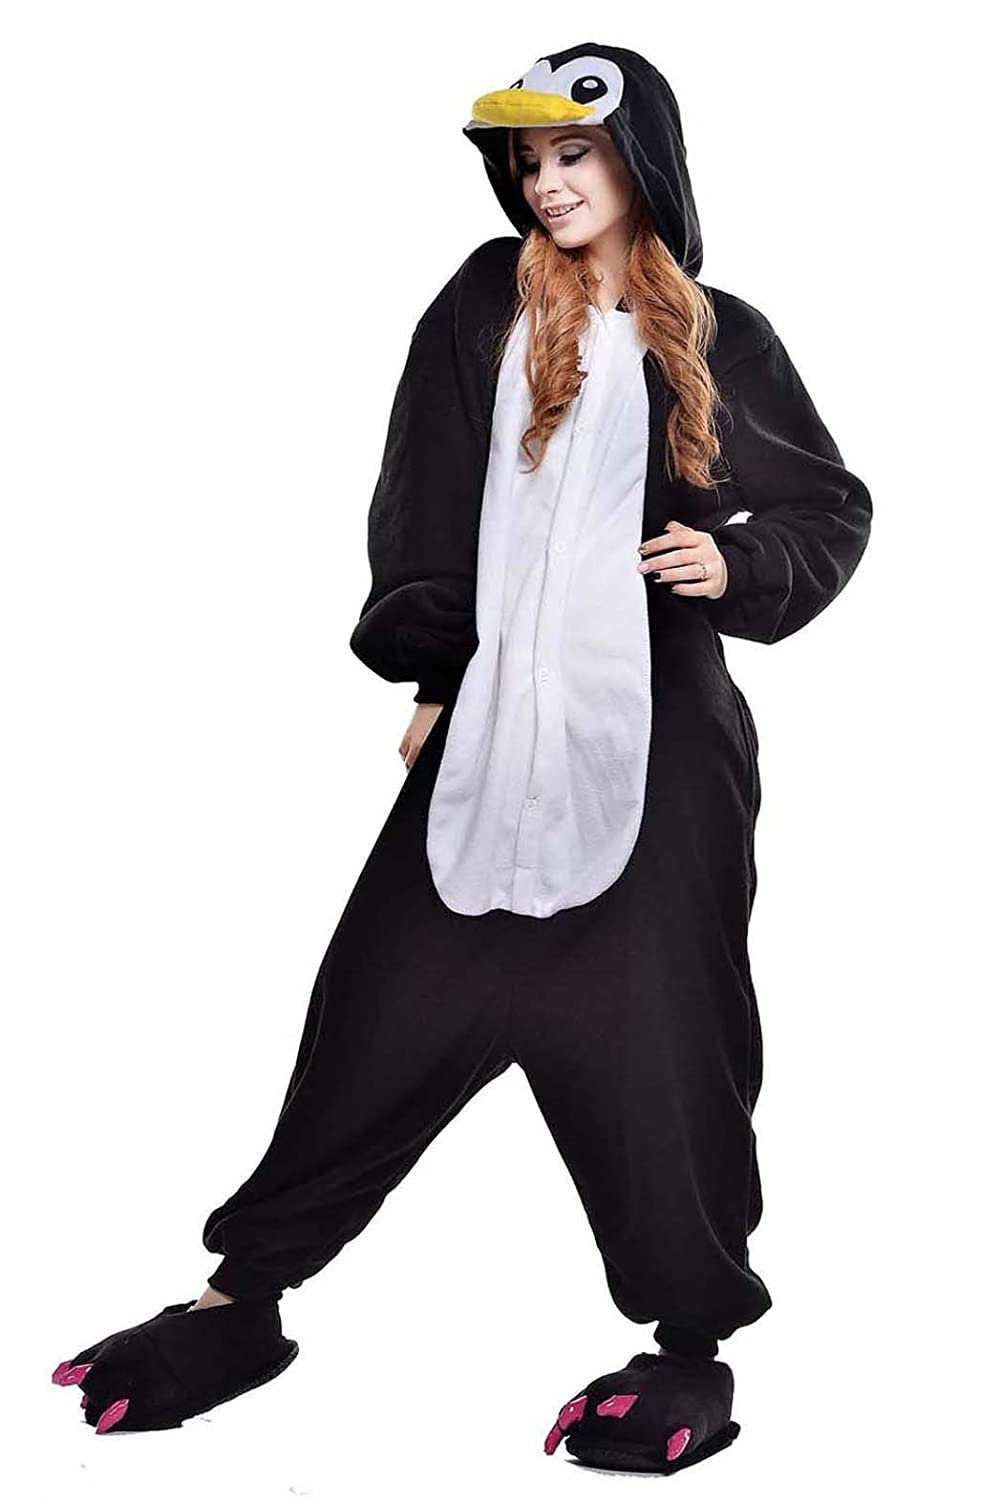 Women's Clothing Clothing Venaster Girls Pyjamas Baboon Adult Unisex Anime Cosplay Onesies Pajamas Romper